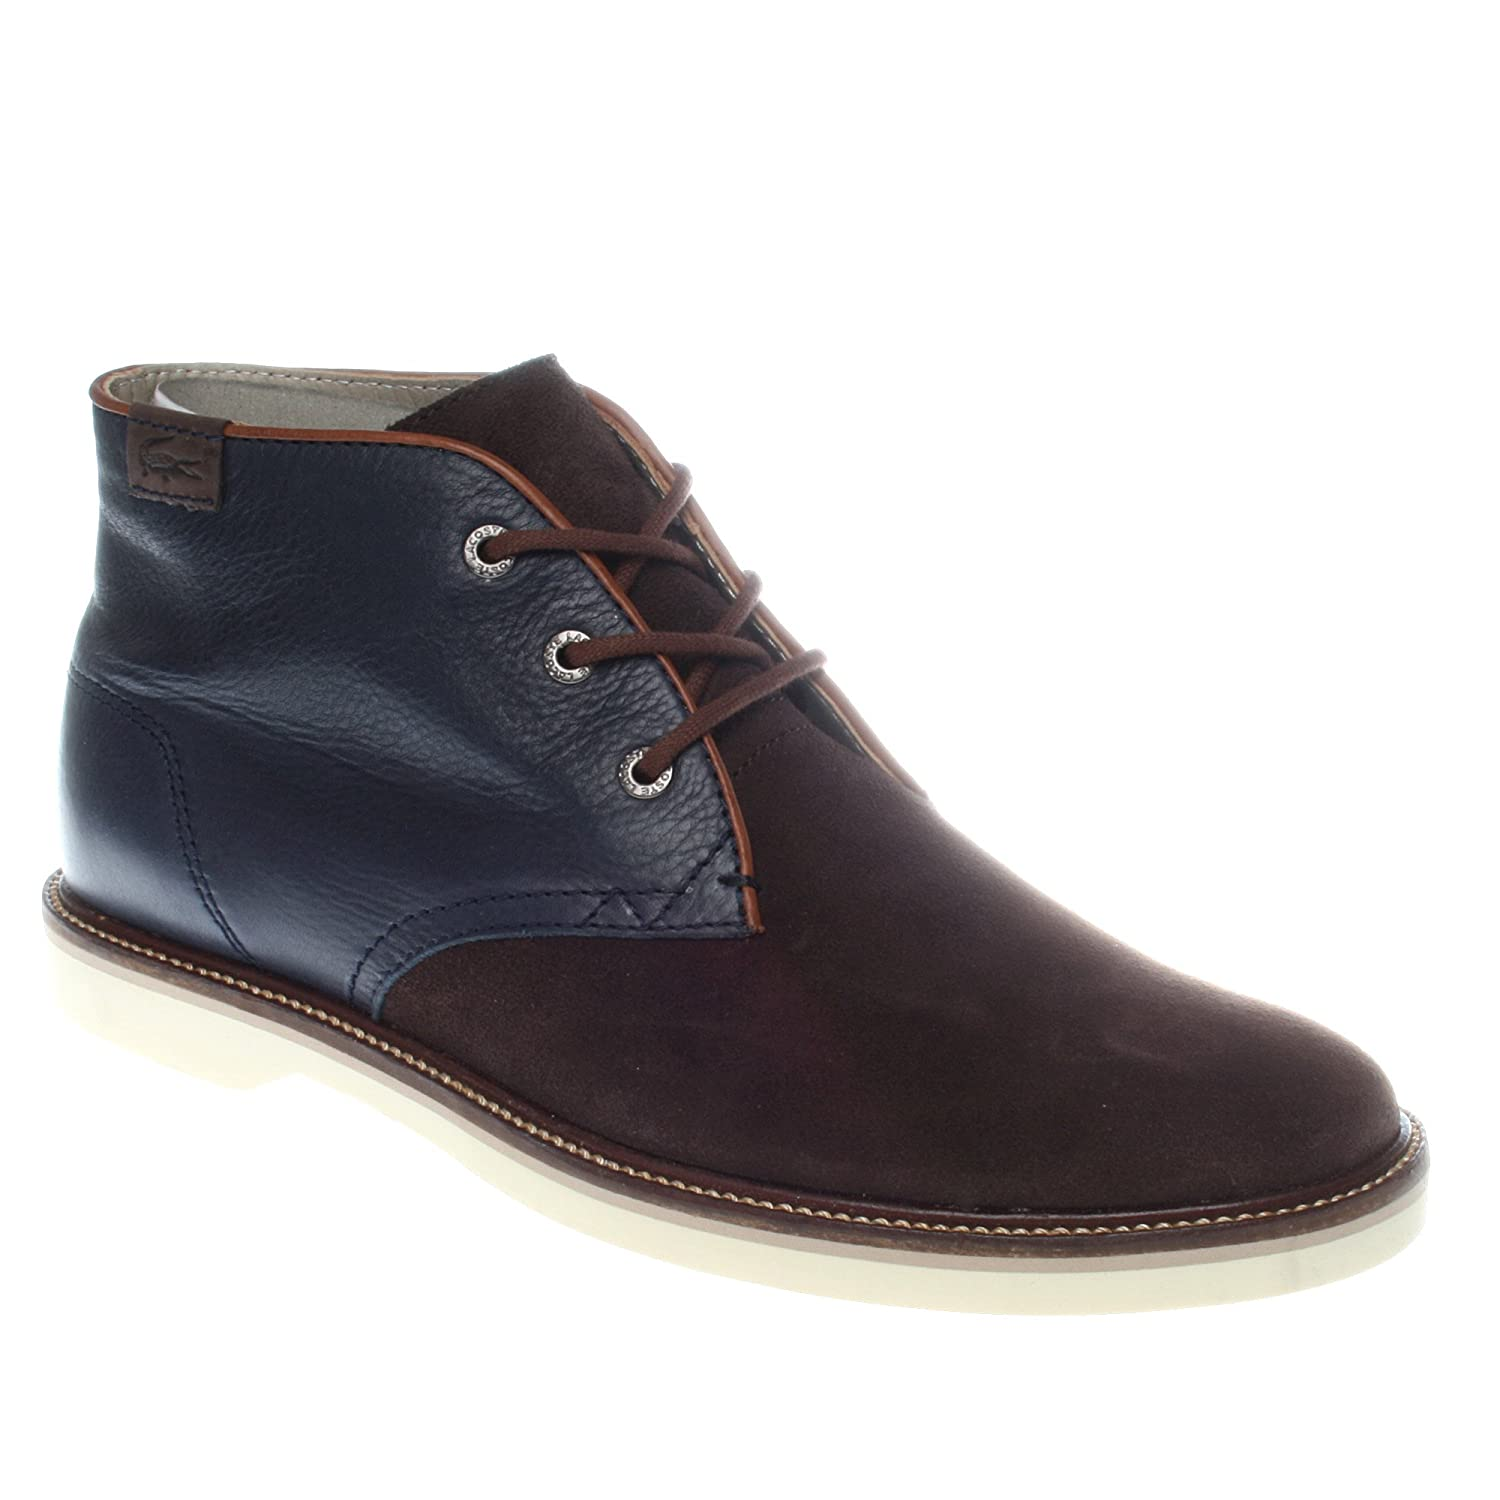 2a236085b Lacoste Men s Sherbrooke Hi 7 Srm Leather Suede Boot Blue   Dark Brown 9  UK  Amazon.co.uk  Shoes   Bags